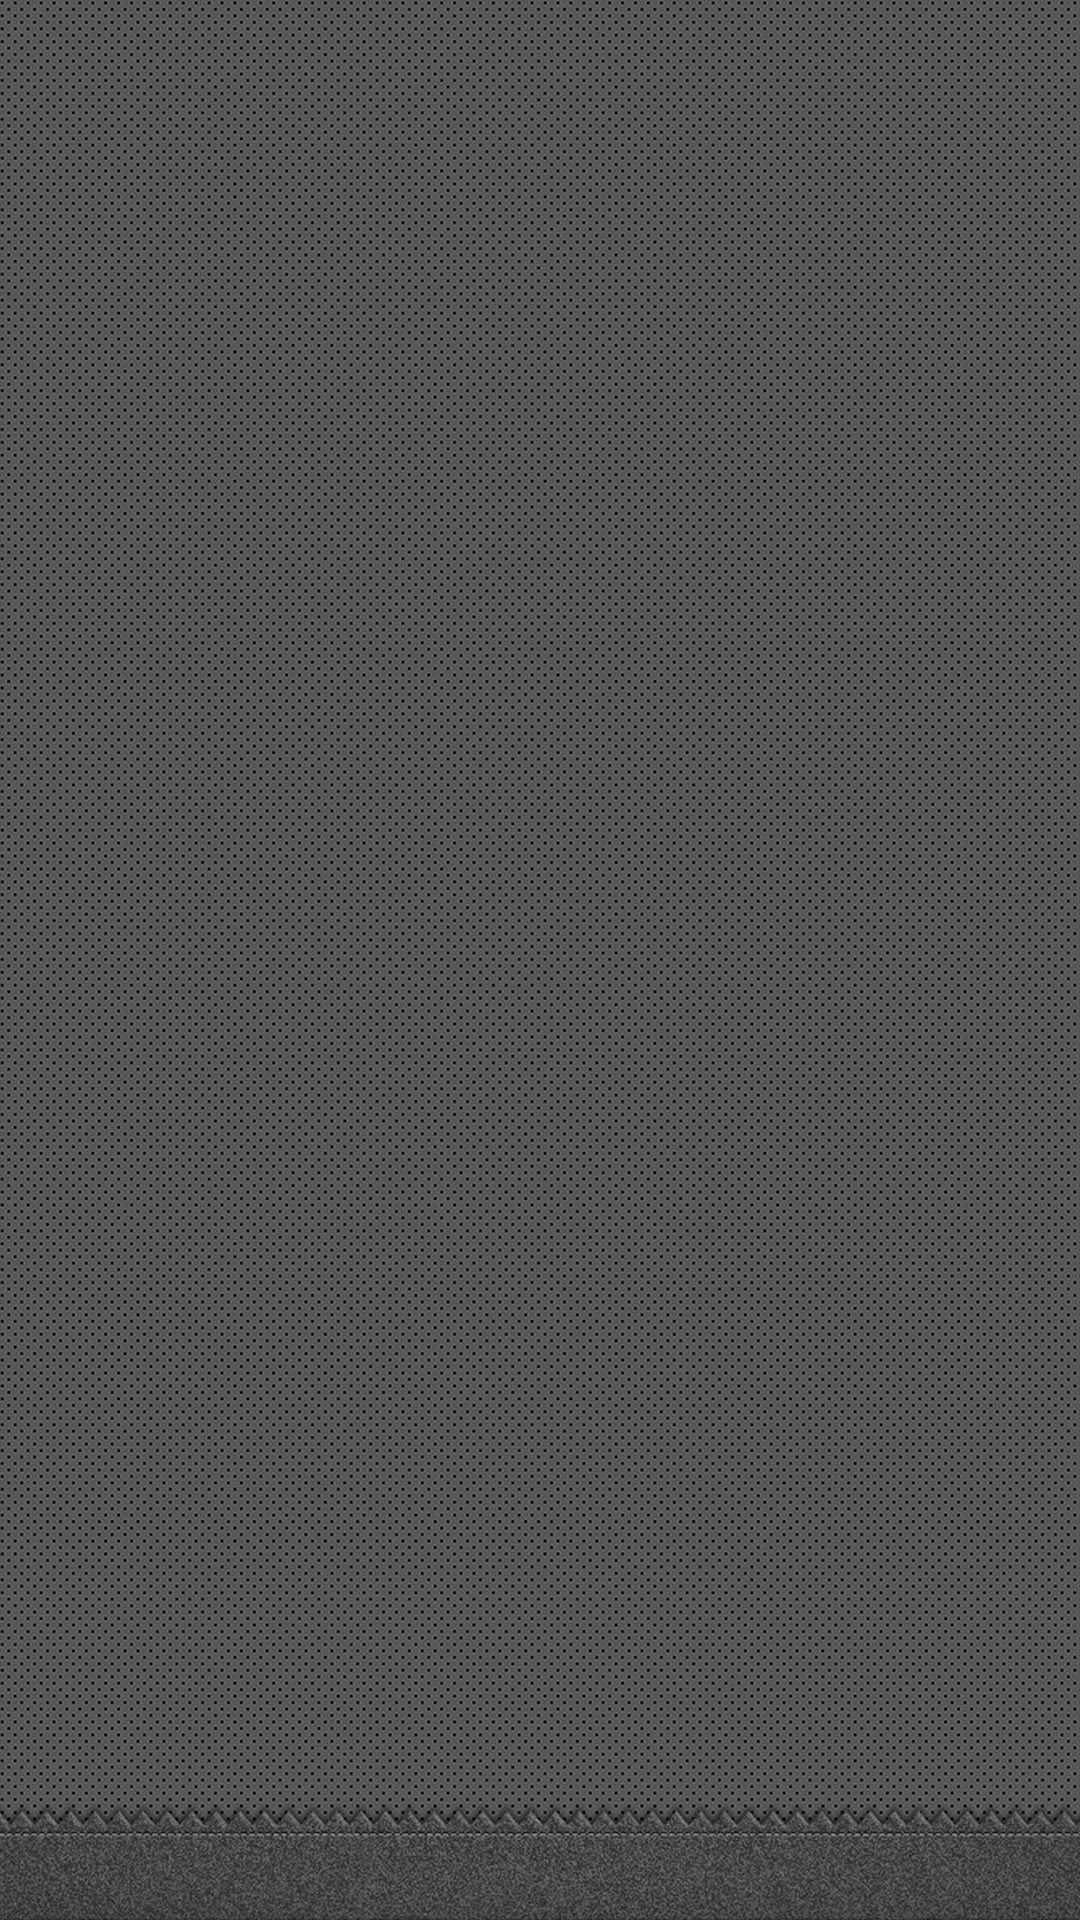 Download 77 Wallpaper Iphone Grey HD Paling Keren